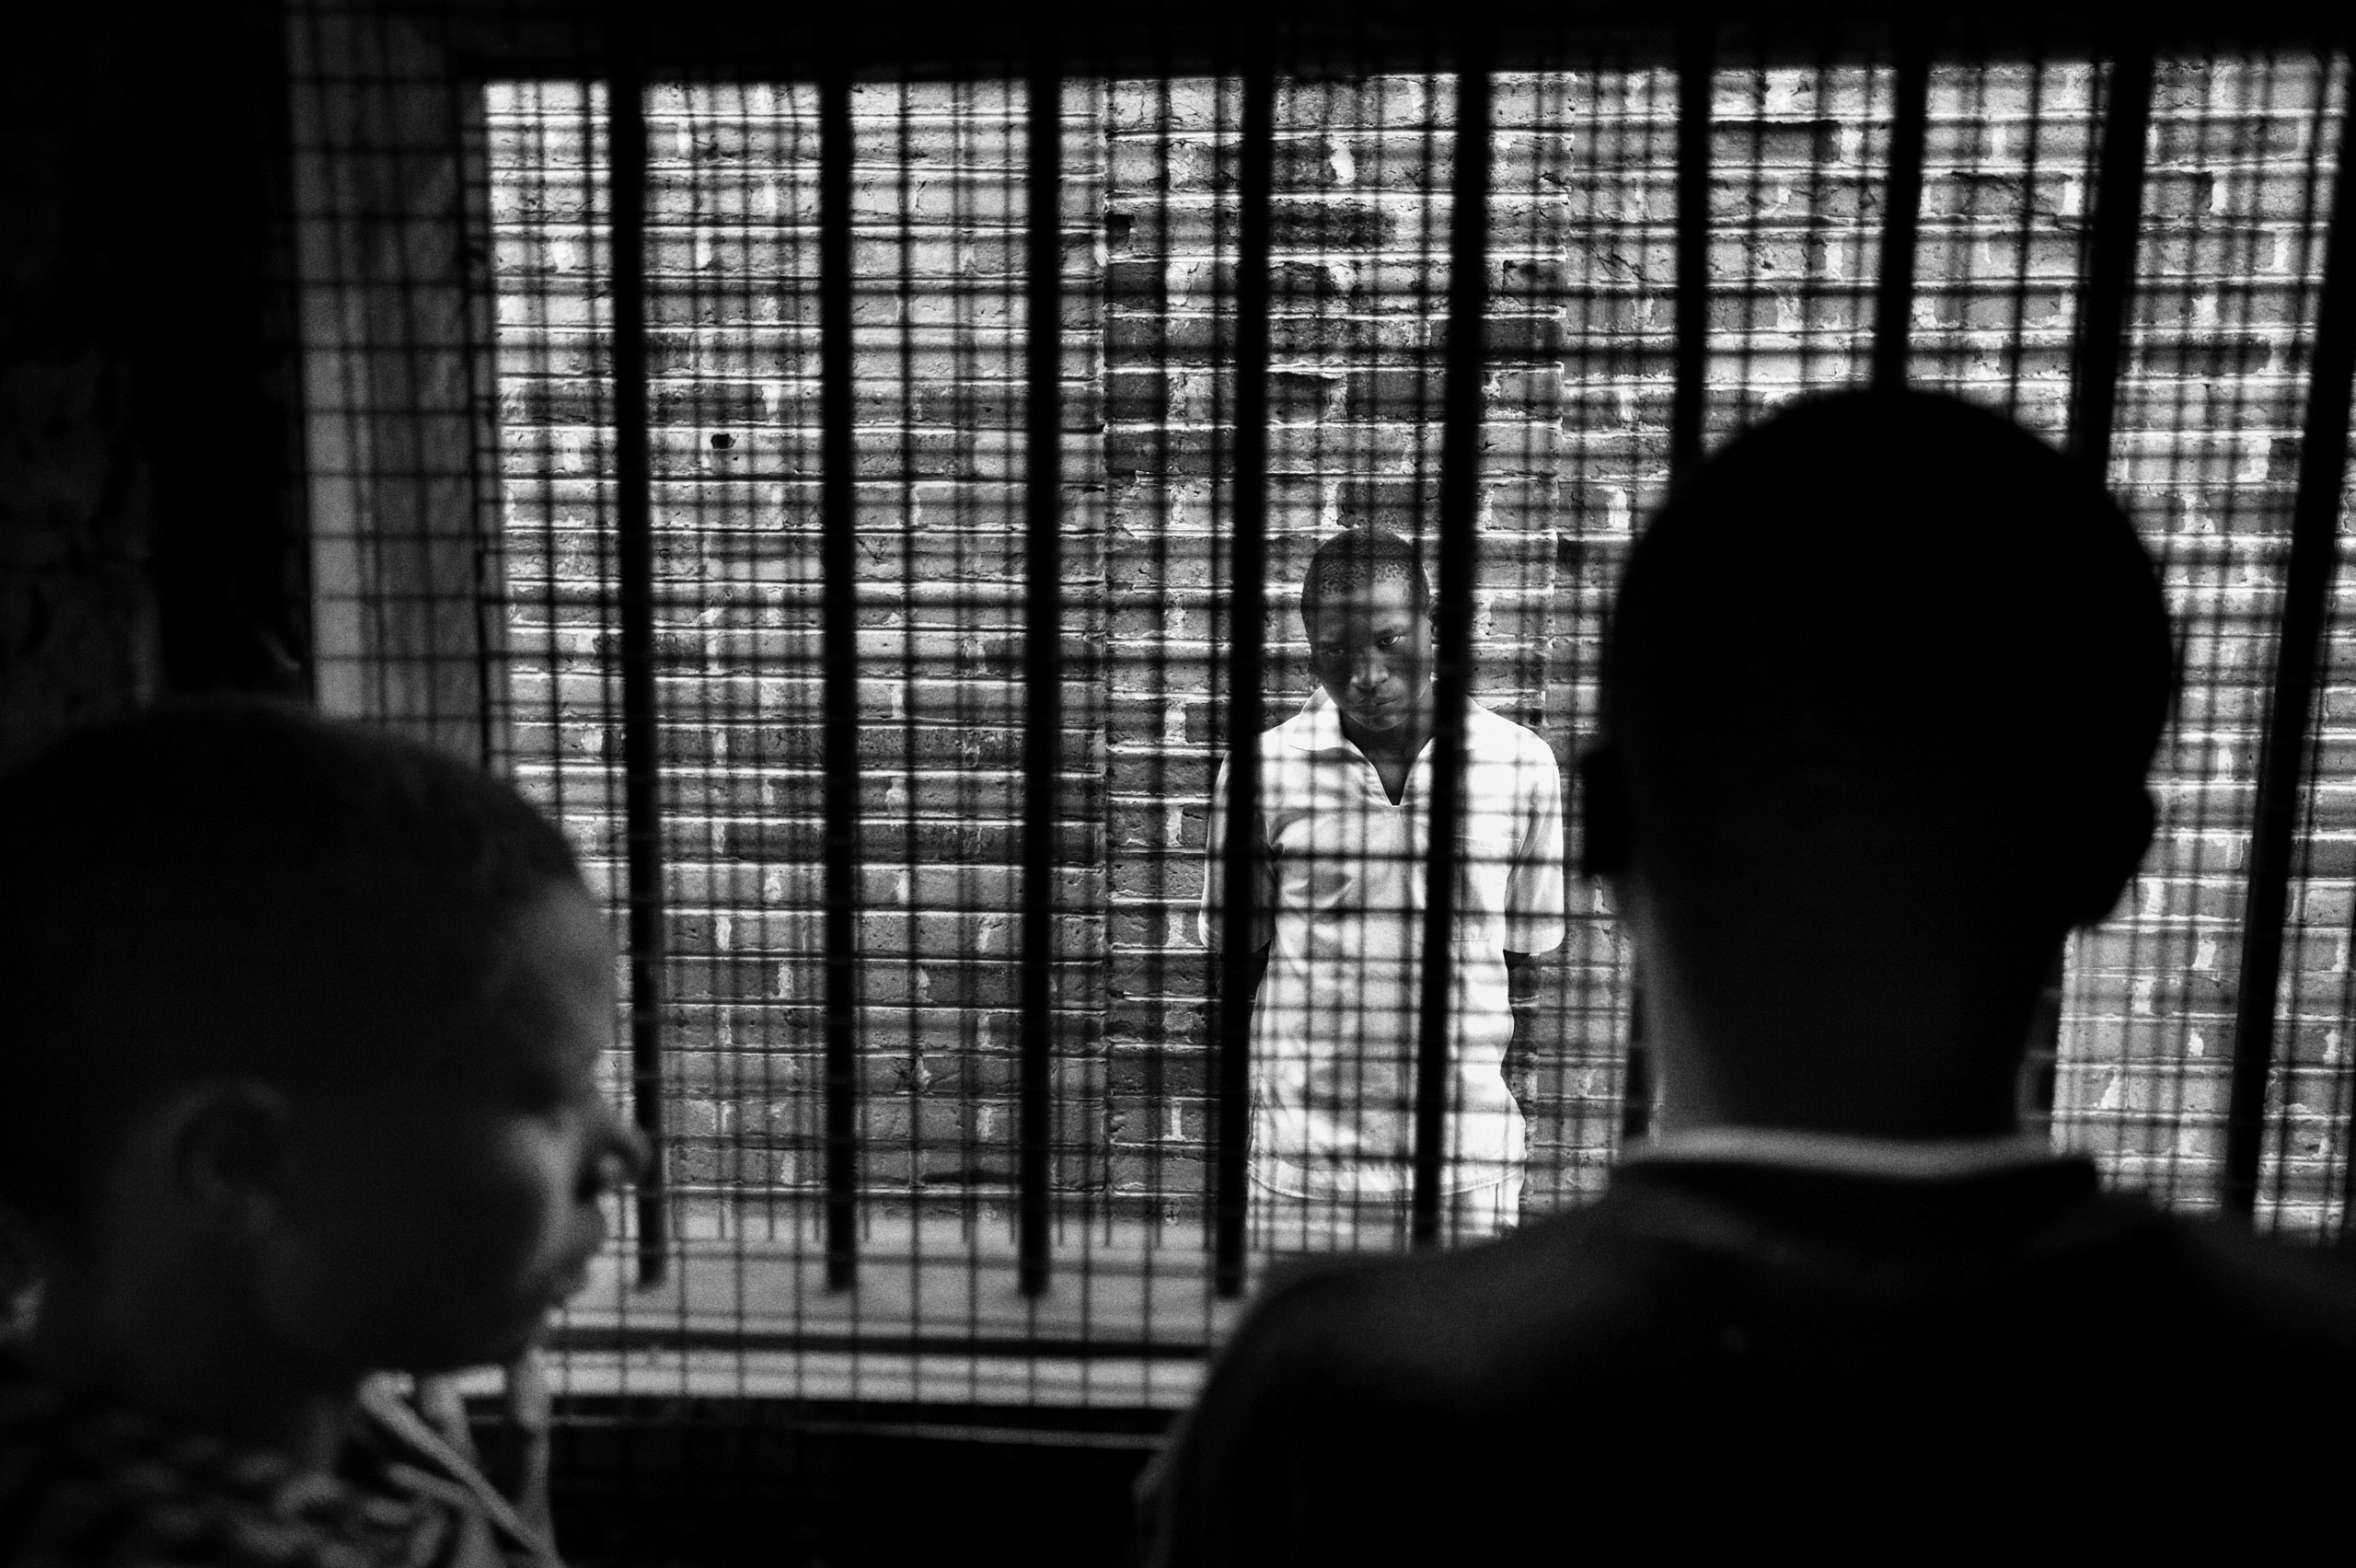 Balaka Mgode's parents visit their son at the Juvenile prison in Mzuzu, Malawi. They are not allowed to touch each other. Mgode has been sentenced to three and a half years in prison for stealing a phone.